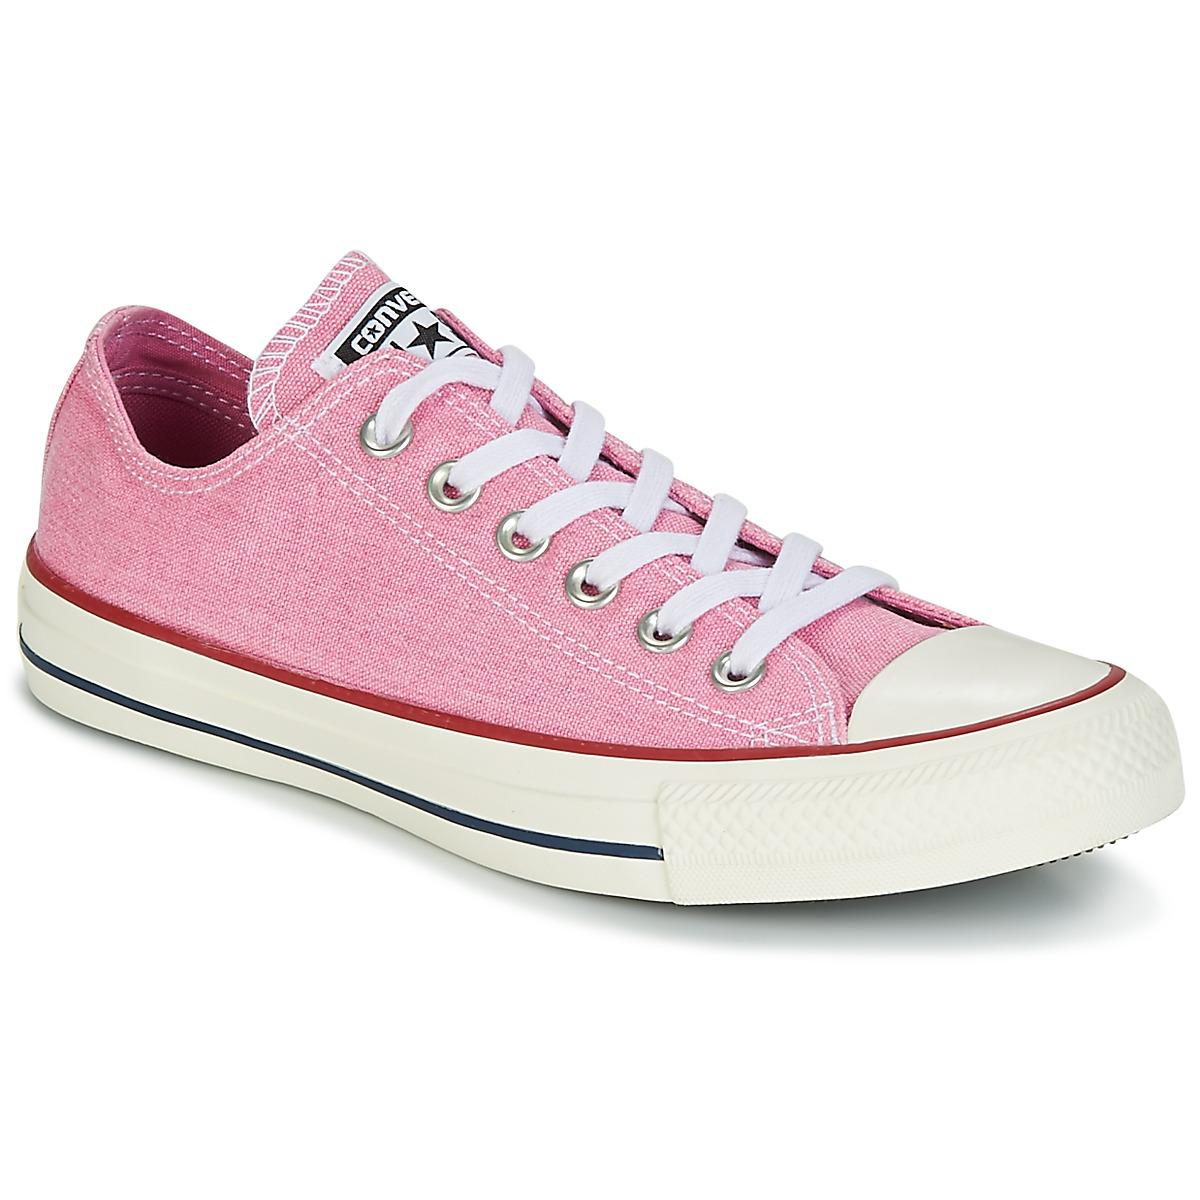 CONVERSE Chuck Taylor Low Top Pink Sparkle Wash UK 7 Platform All Star Trainer